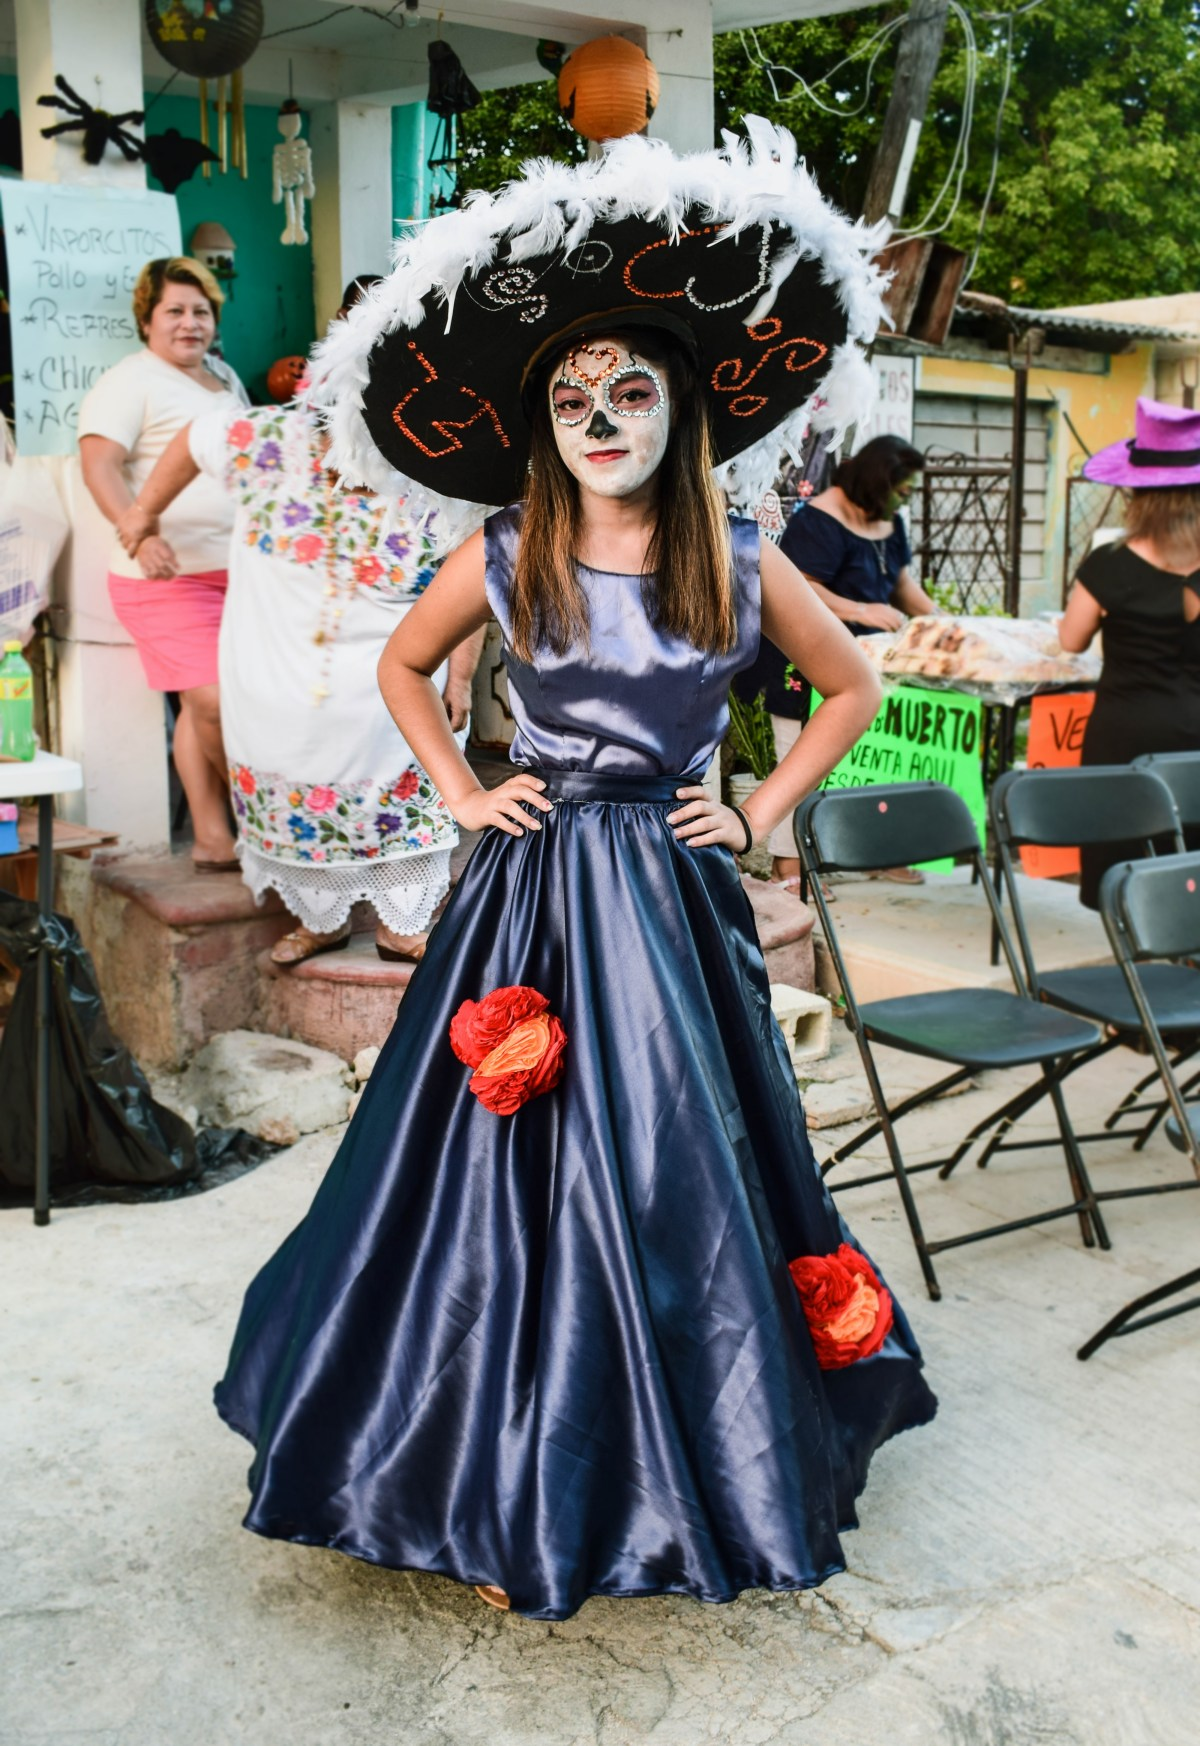 The Day of the Dead outfit